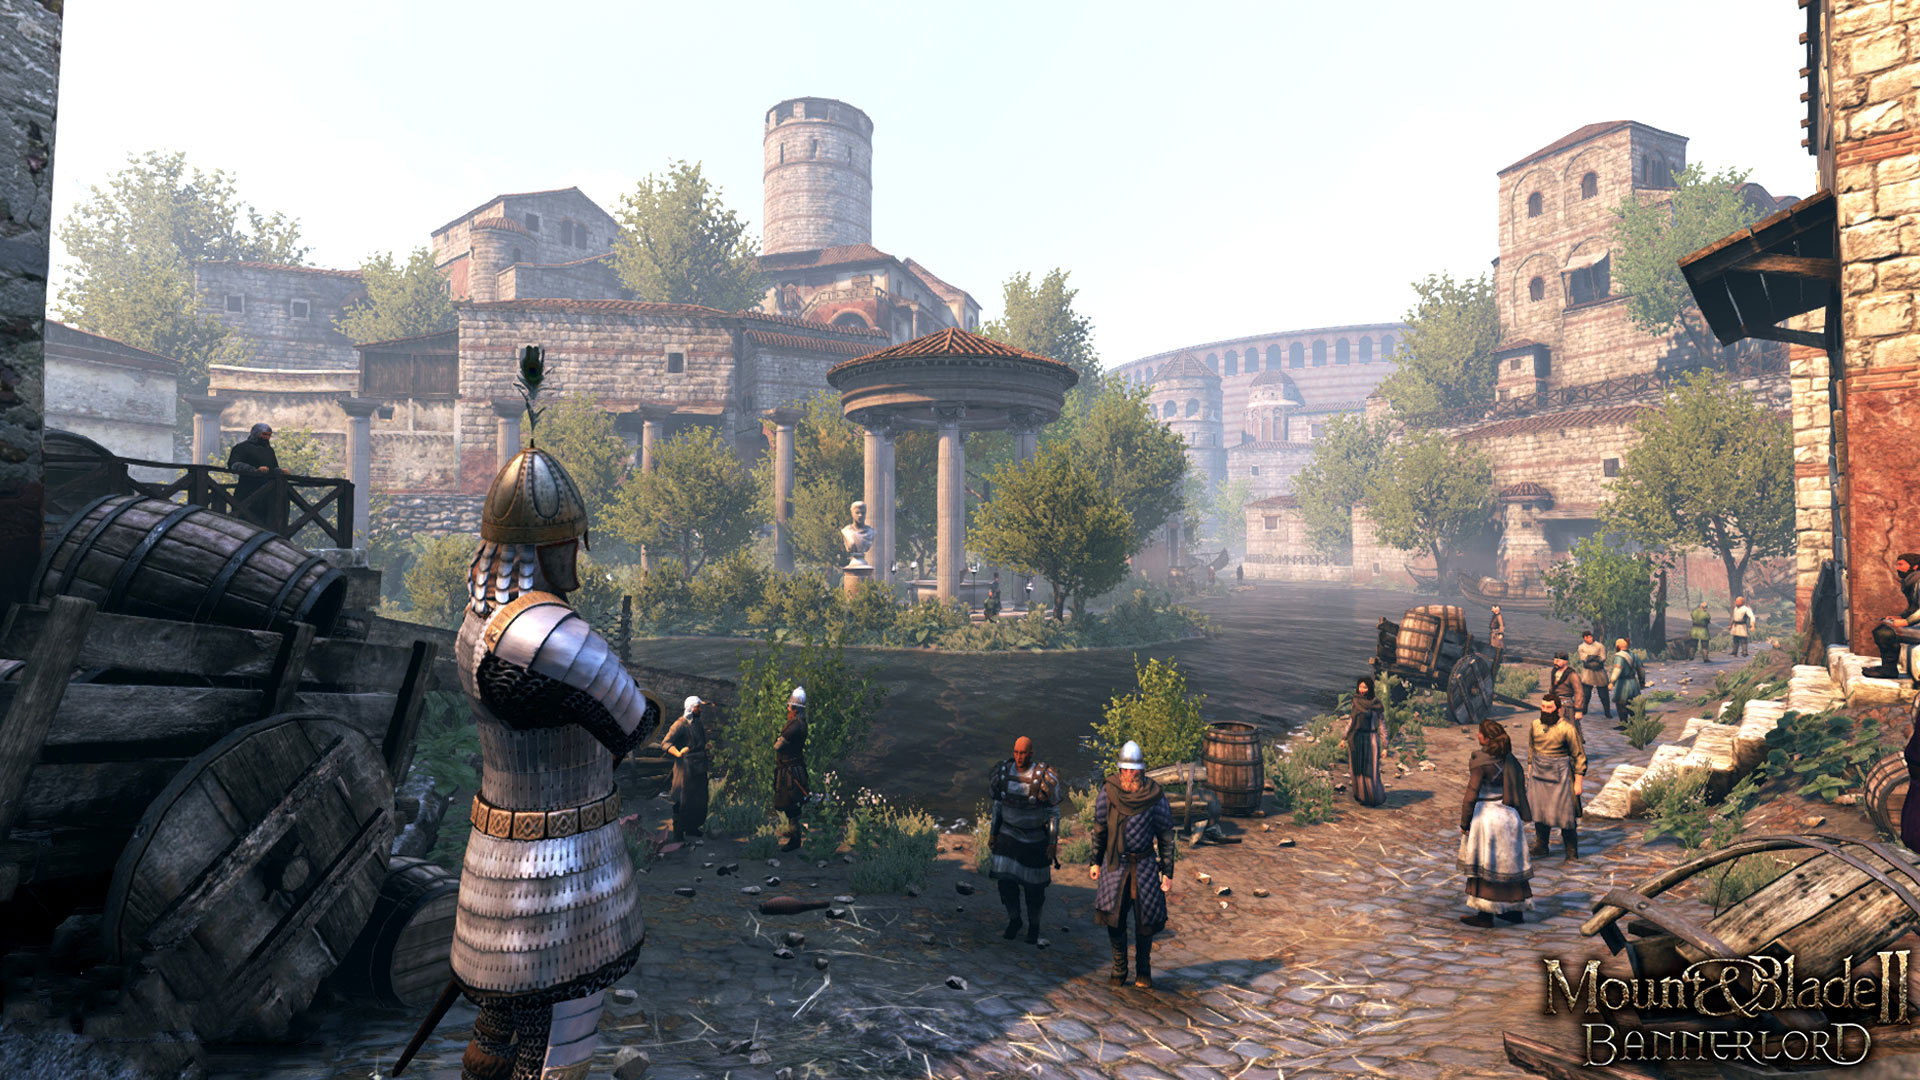 Mount Amp Blade 2 Bannerlord Wallpapers In Ultra Hd 4k